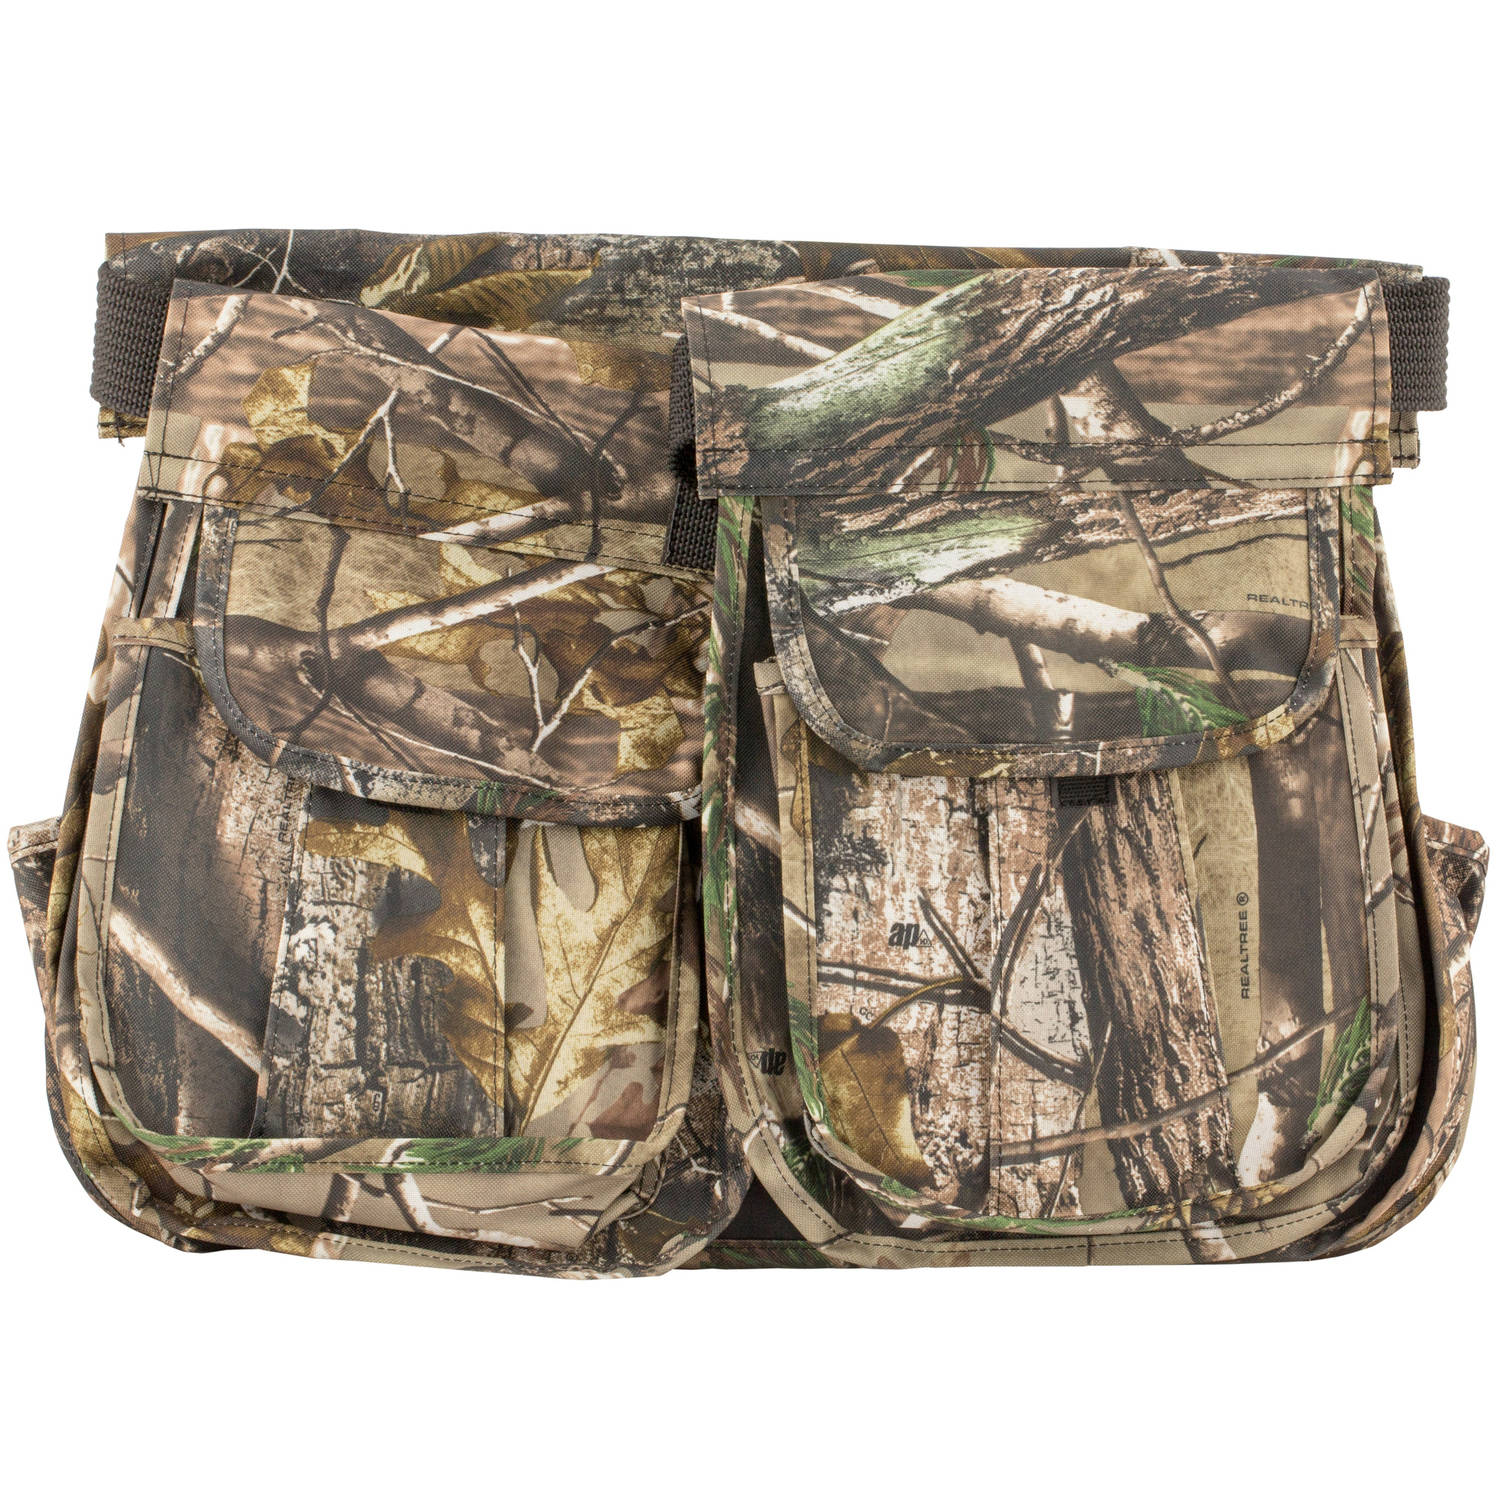 Outdoor Connection BGGMDAP28151 Deluxe Game Bag Realtree AP